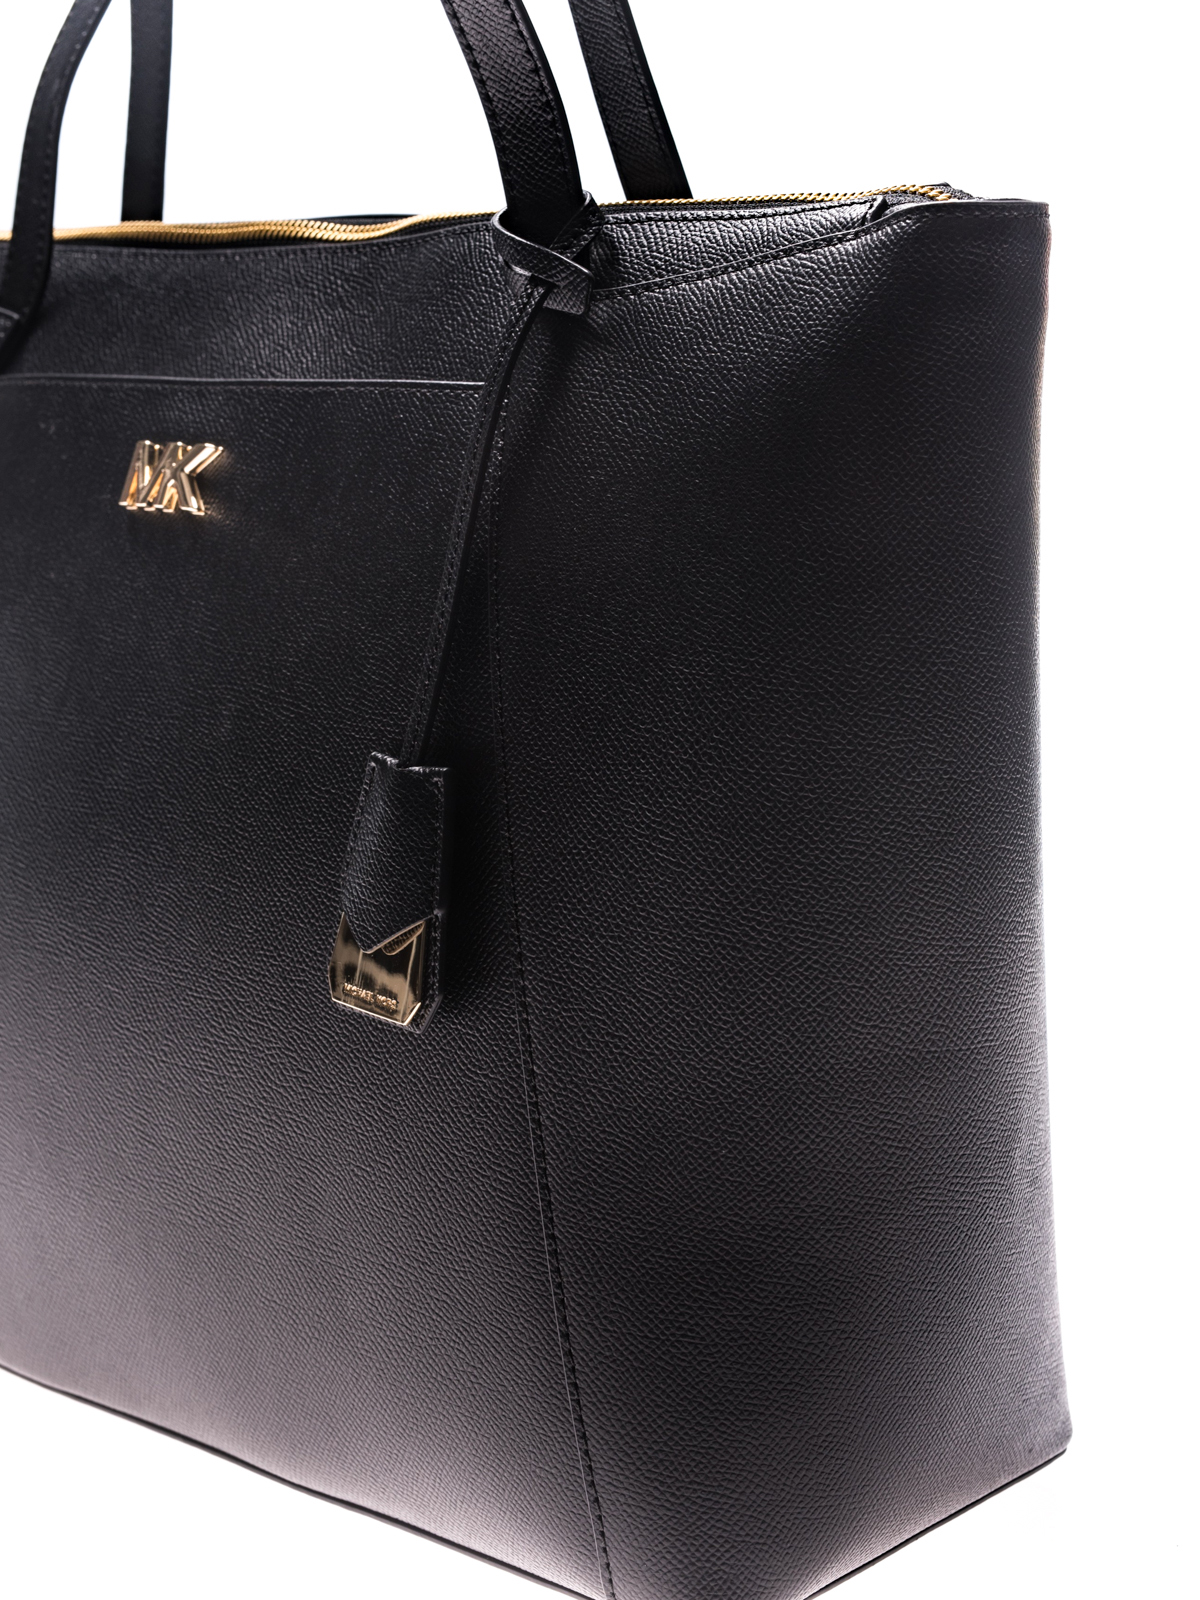 1e0b1c283844 Michael Kors - Maddie hammered leather tote - totes bags - 30S8GN2T9L001